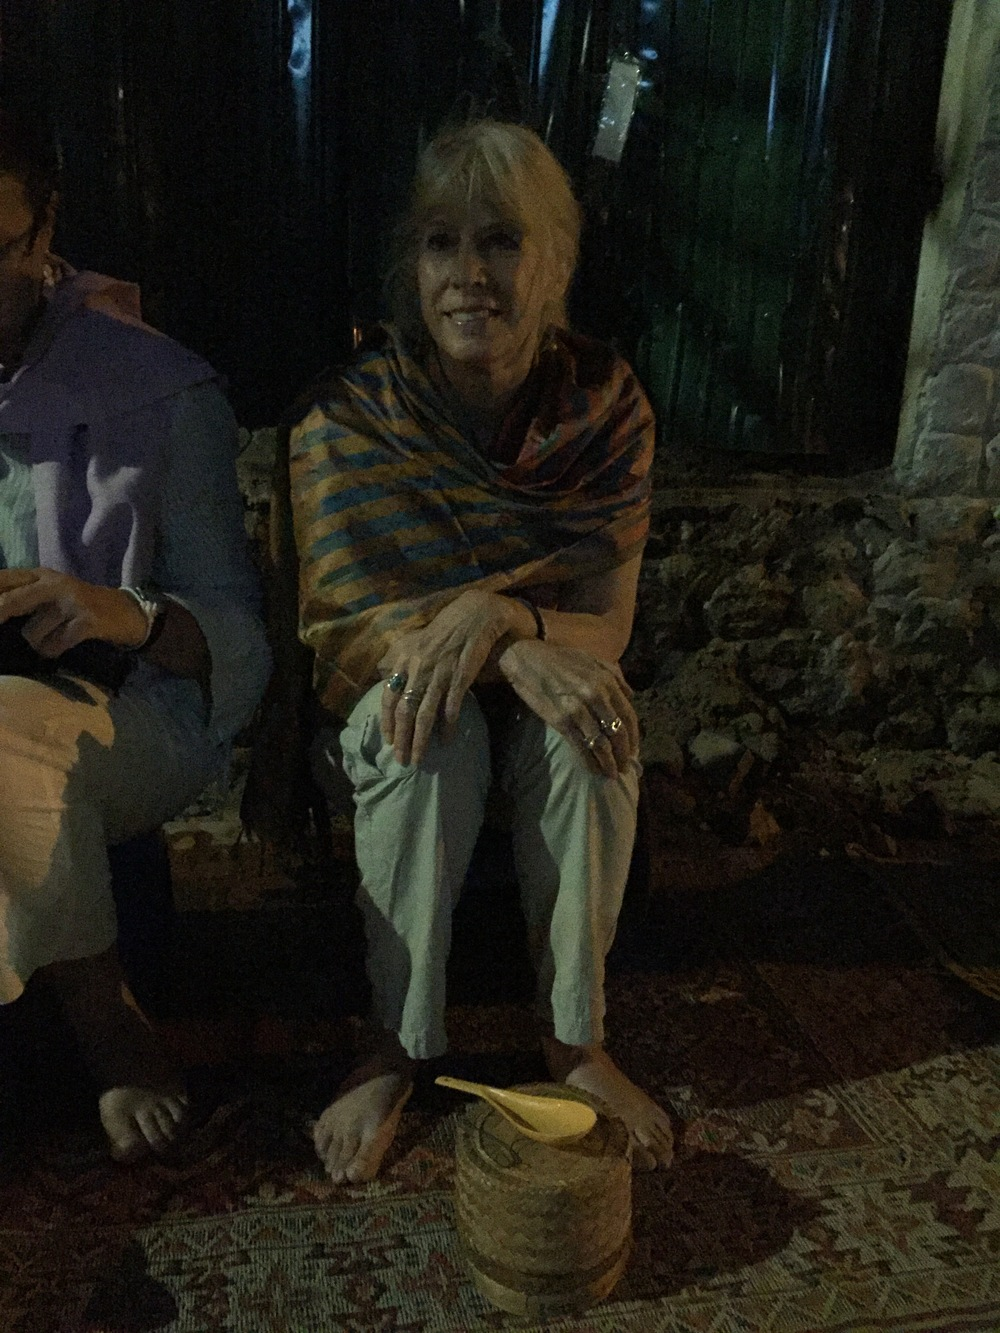 Me waiting at 5:30 a.m. along the main street in Luang Prabang, Laos to make a rice offering to the daily procession of Buddhist monks with their begging bowls.